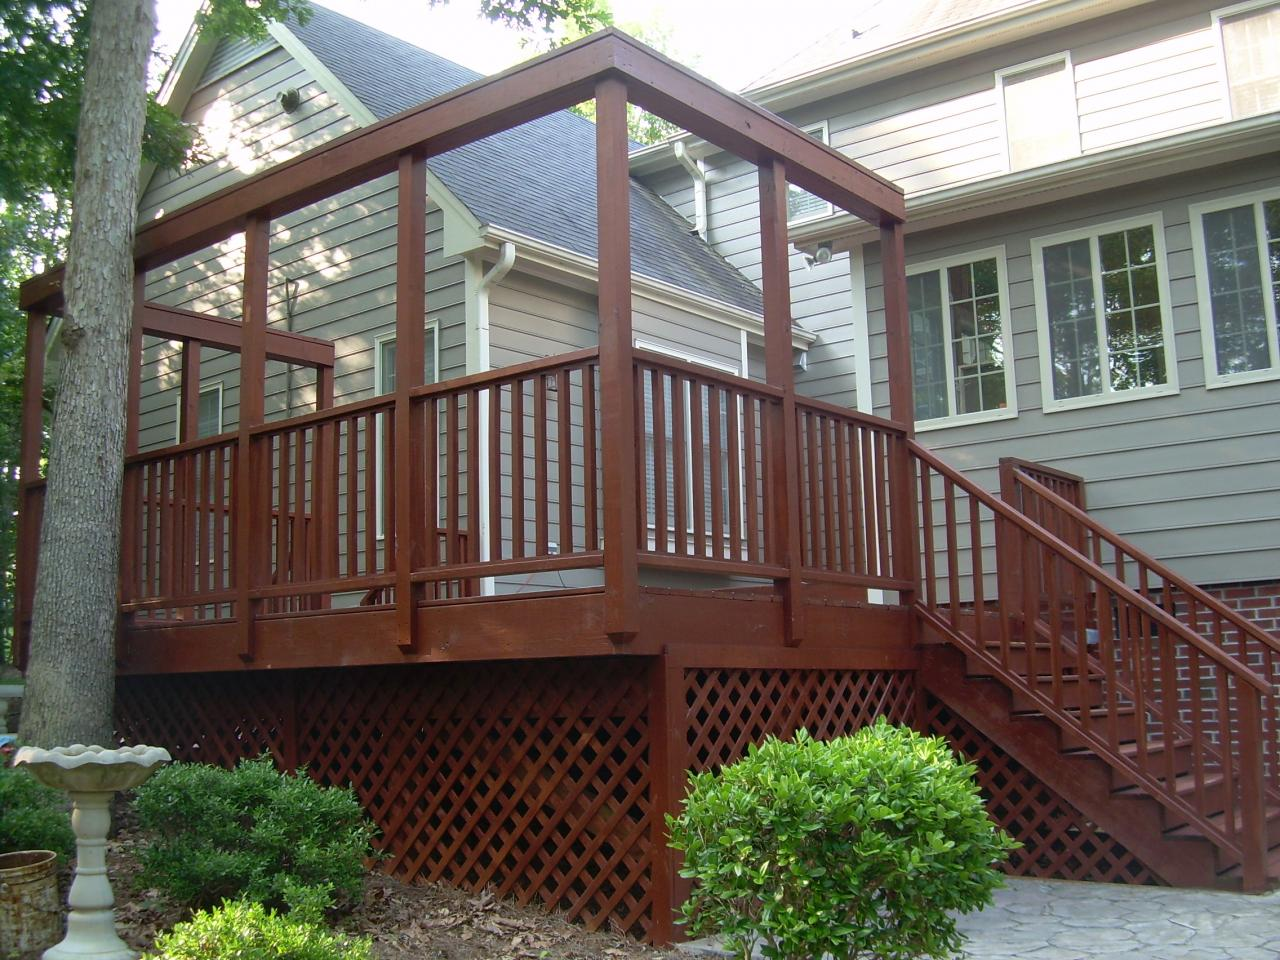 Olympic Deck Restore Reviews 2015 | Home Design Ideas